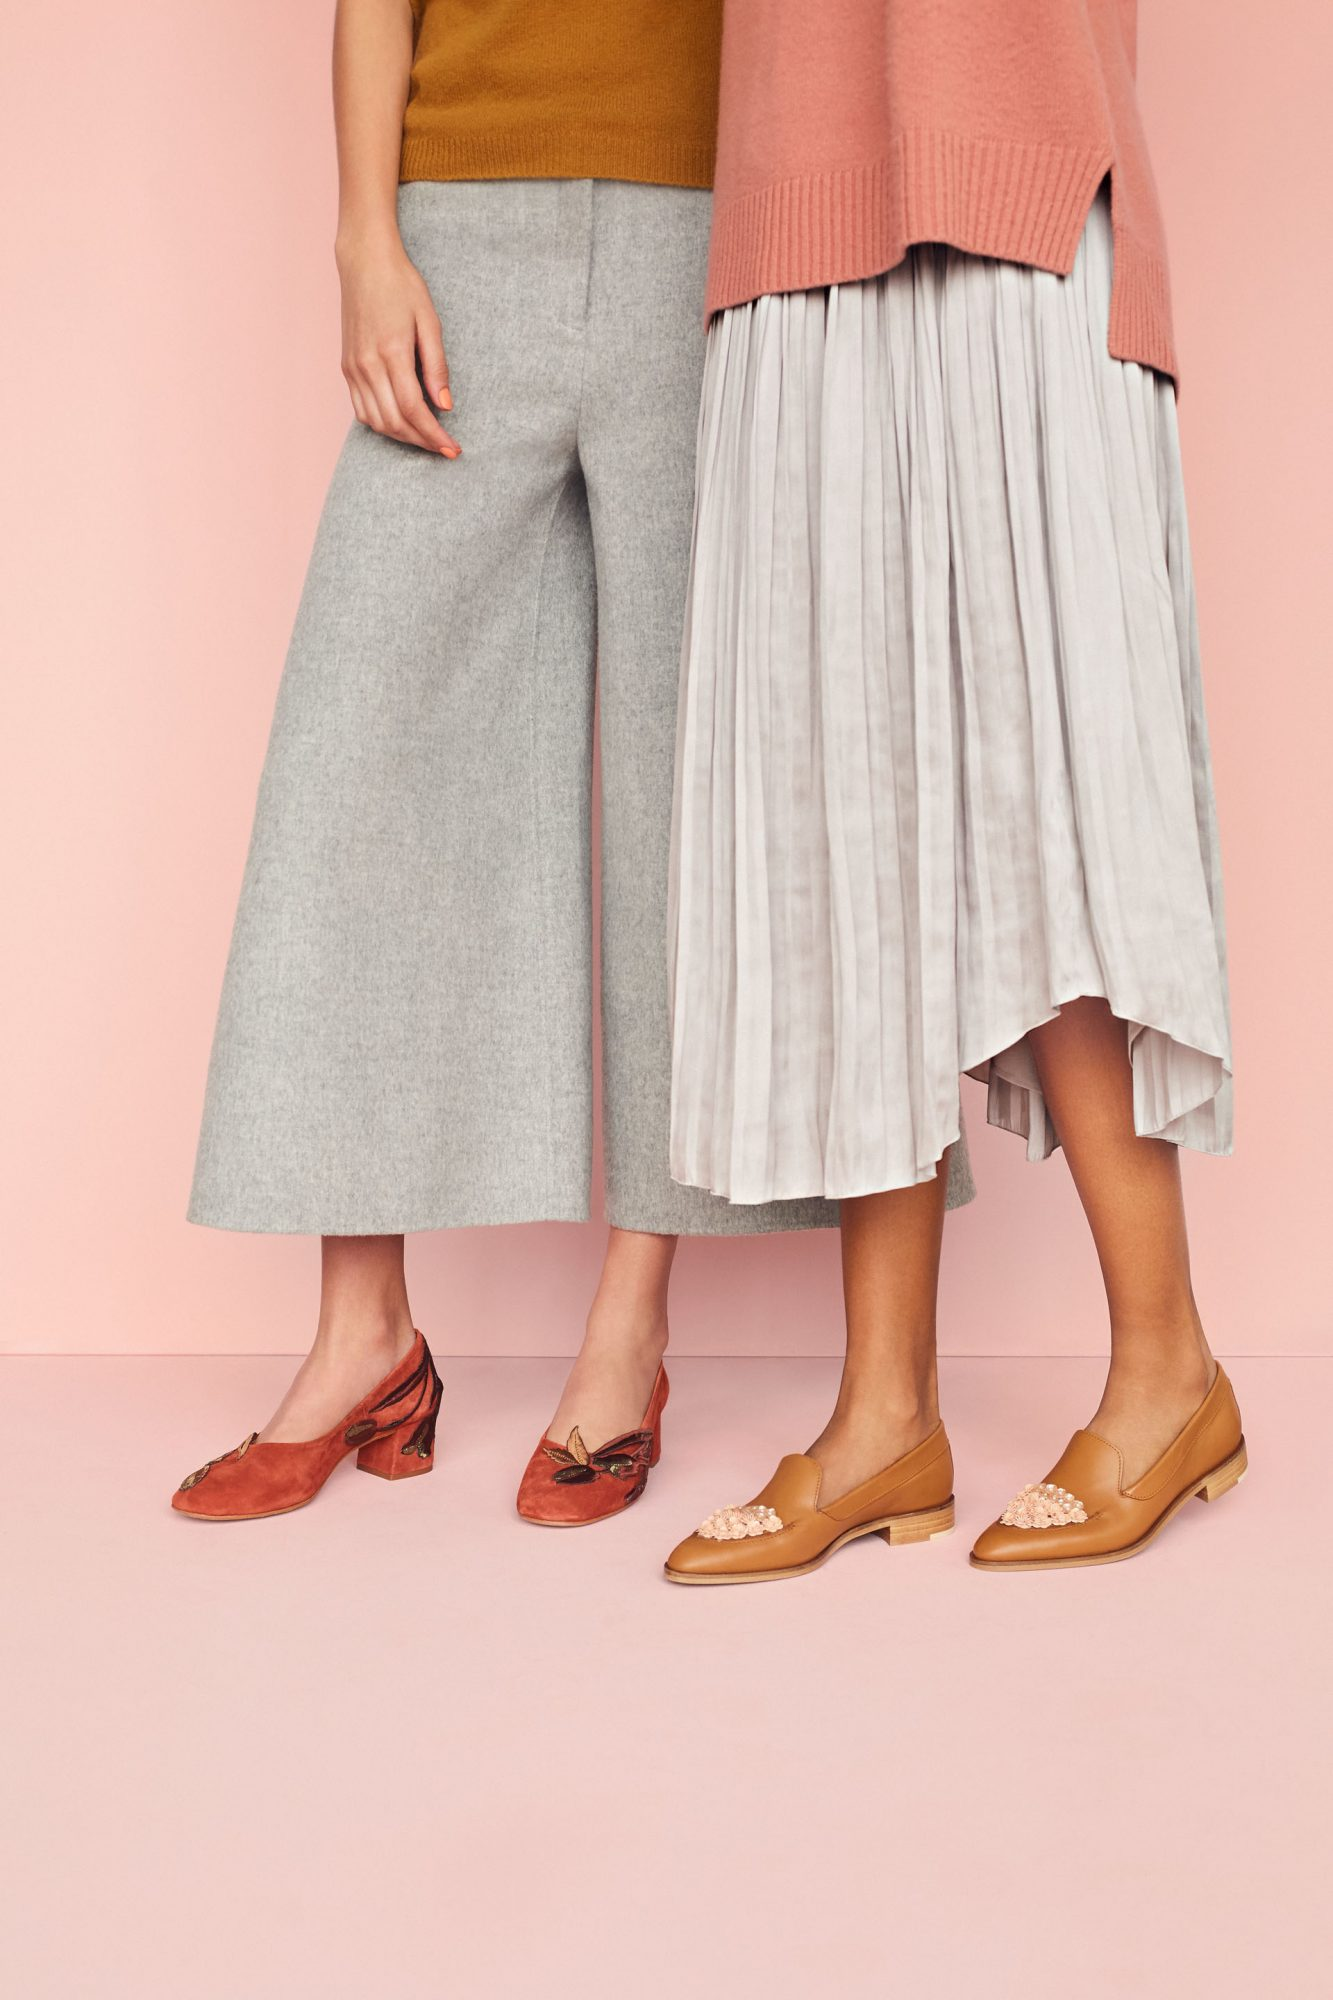 two women wearing appliqued shoes